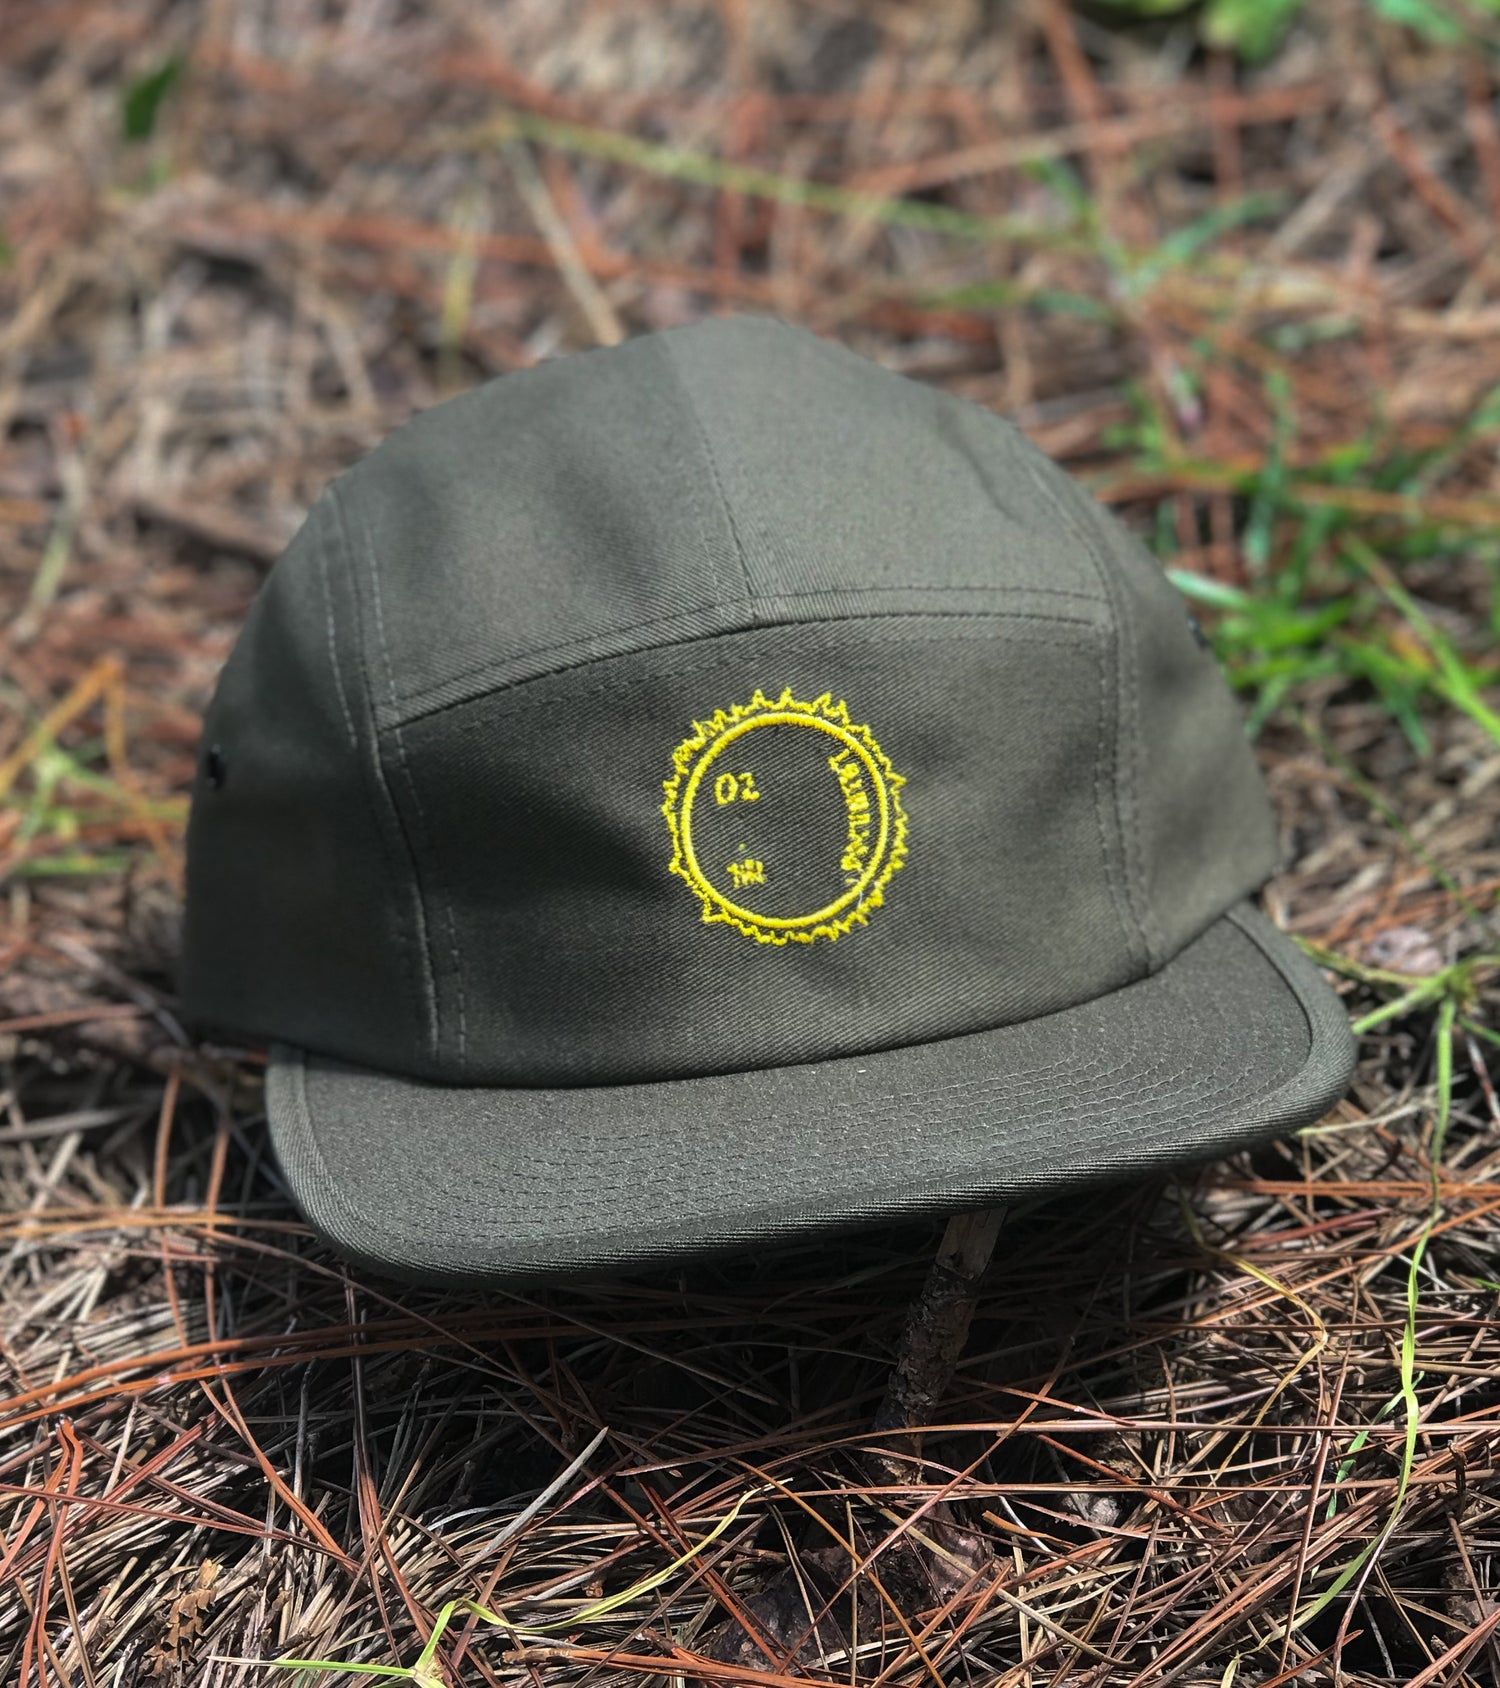 Image of volume 02 sun cap